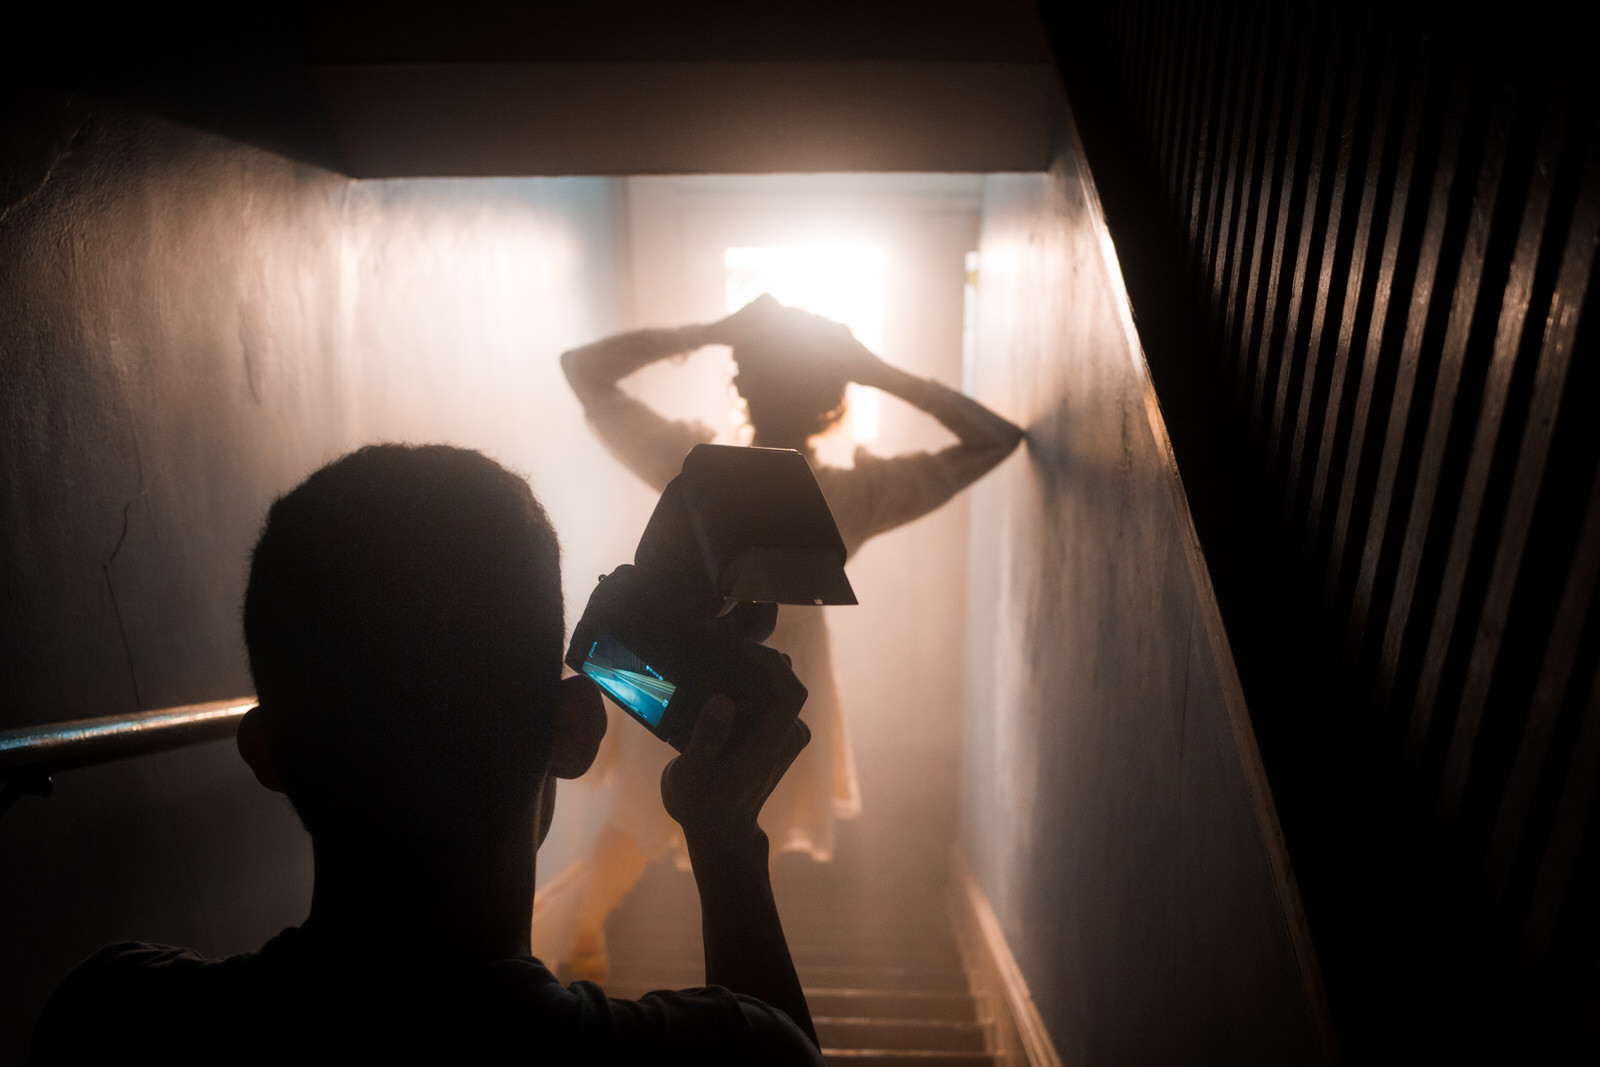 I switched my speedlight off and let the Arri light create a beautiful silhouette for this shot.